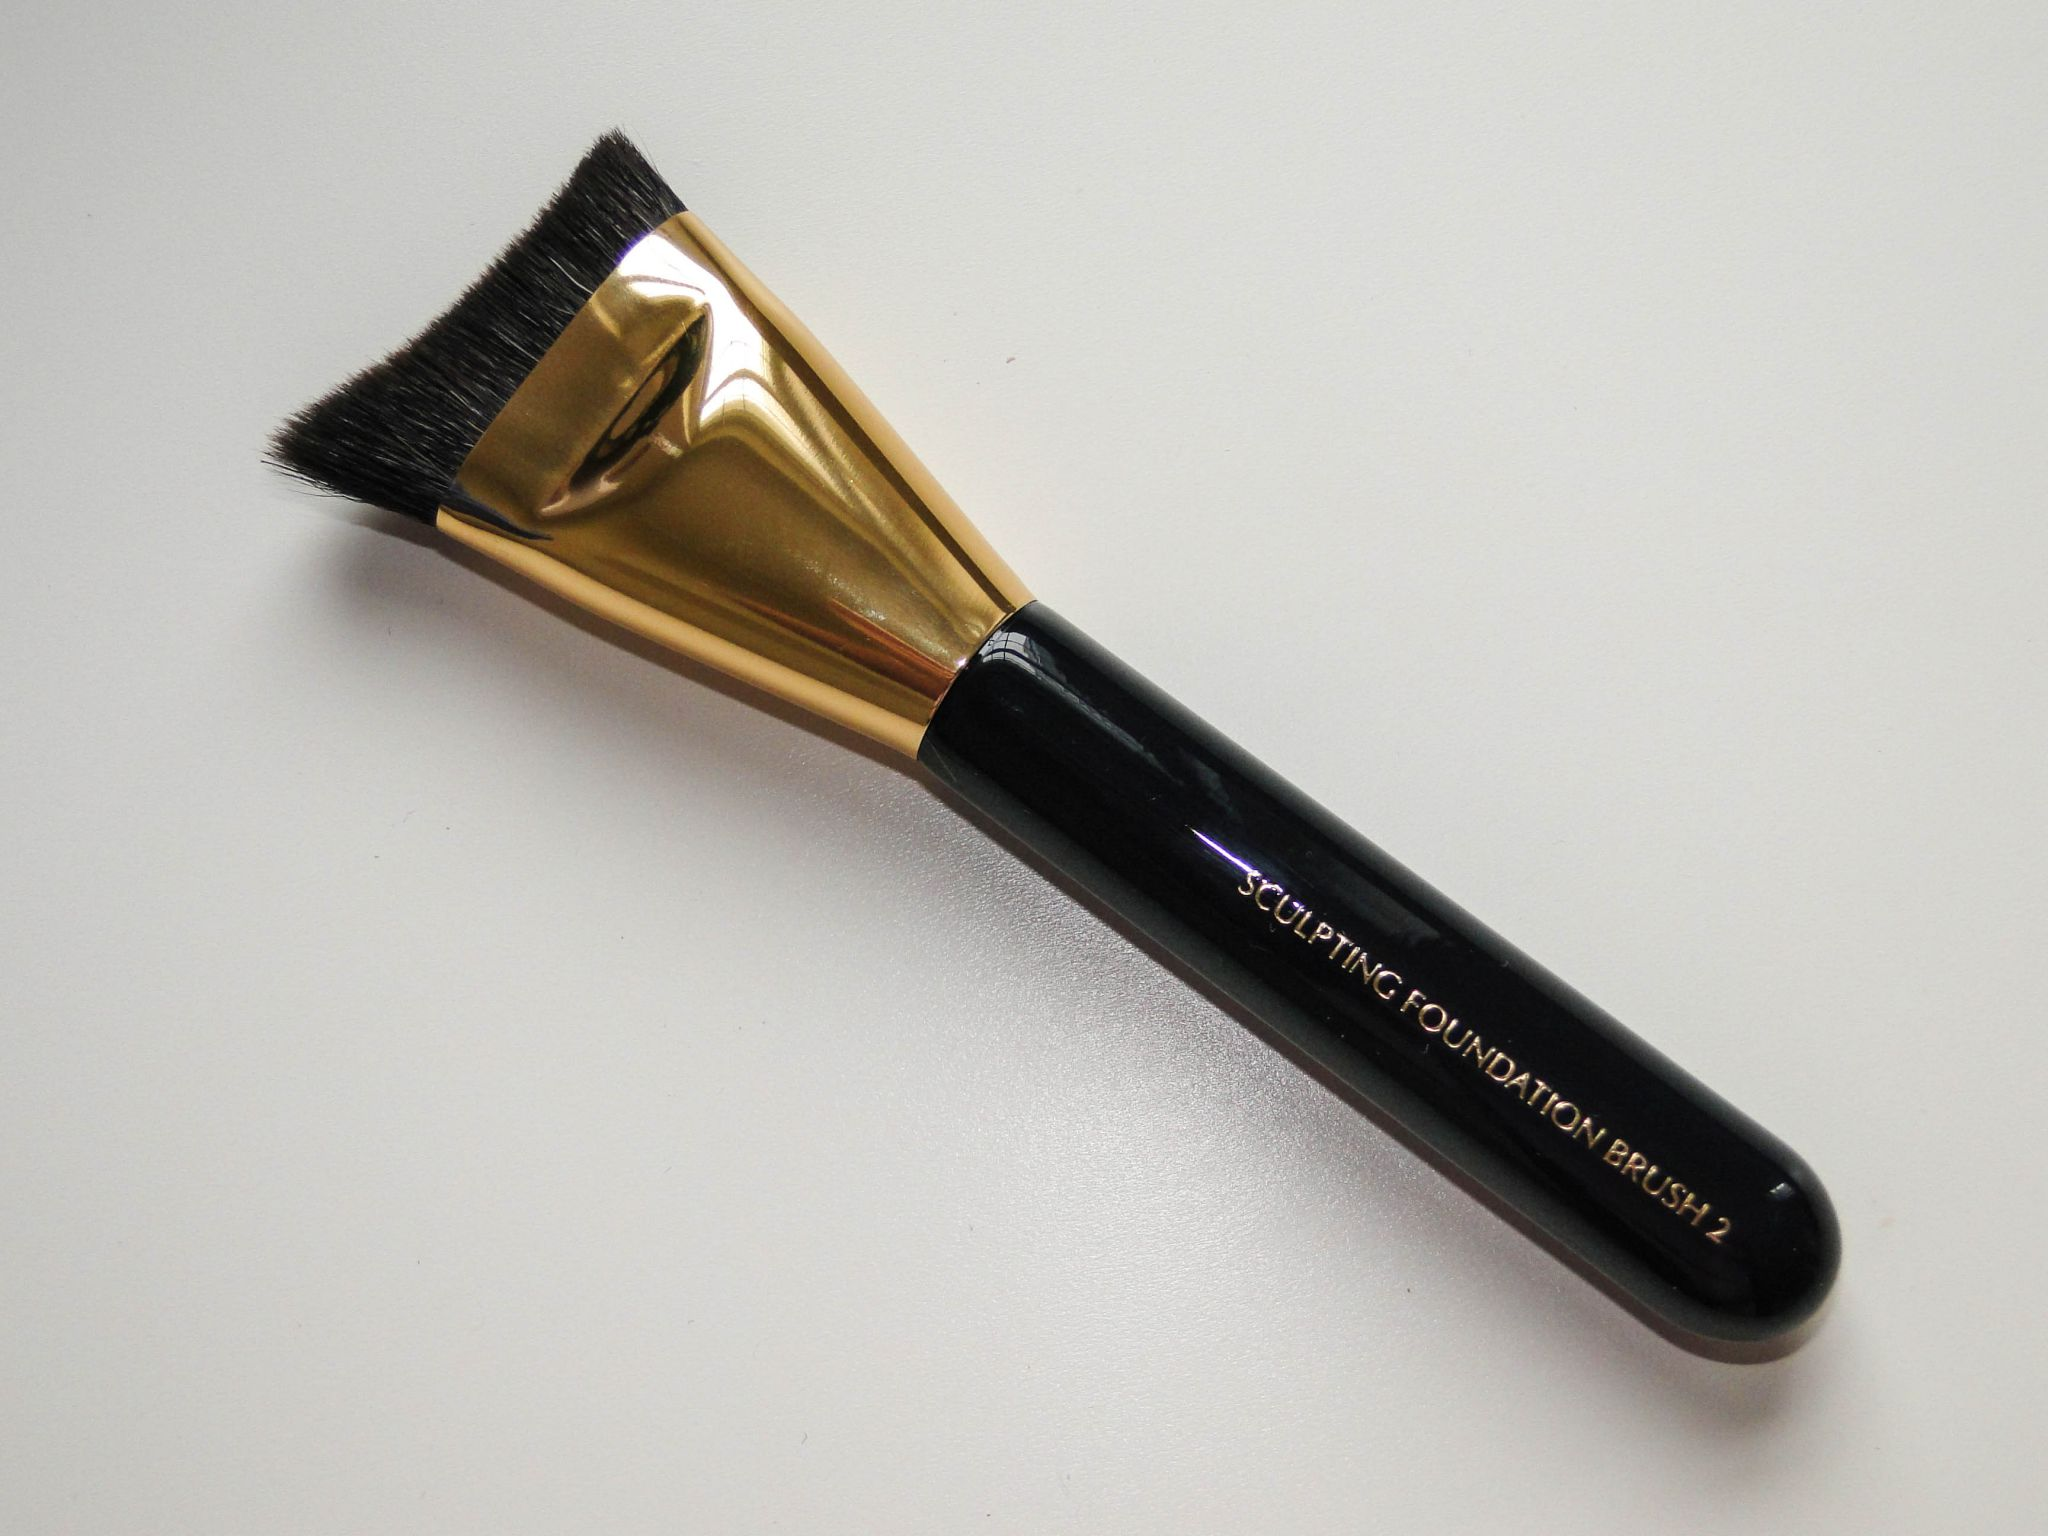 Estee Lauder Sculpting Foundation Brush 2